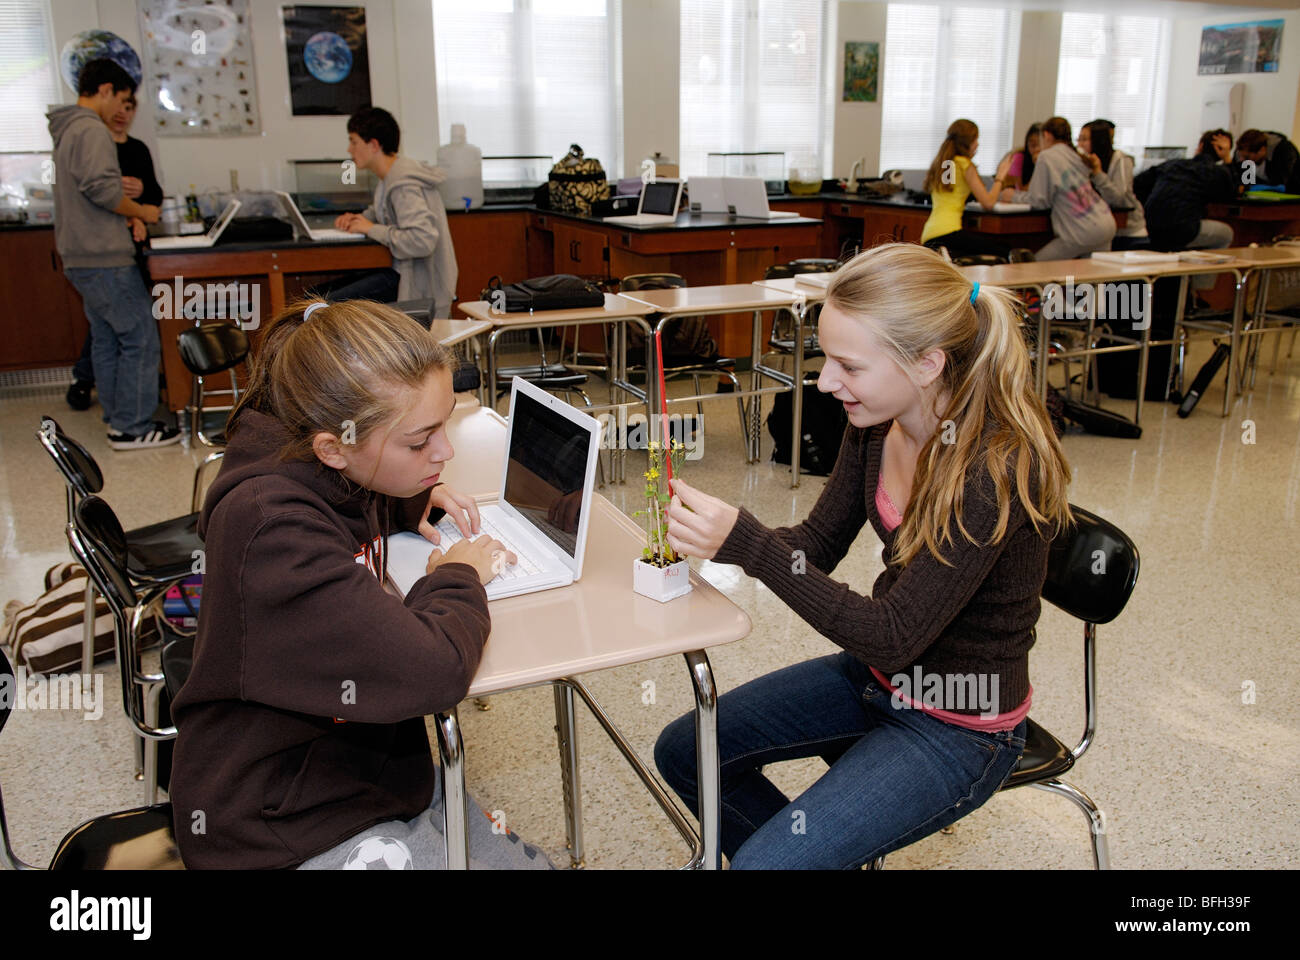 High school students collecting data on a plant experiment, learning science in classroom - Stock Image